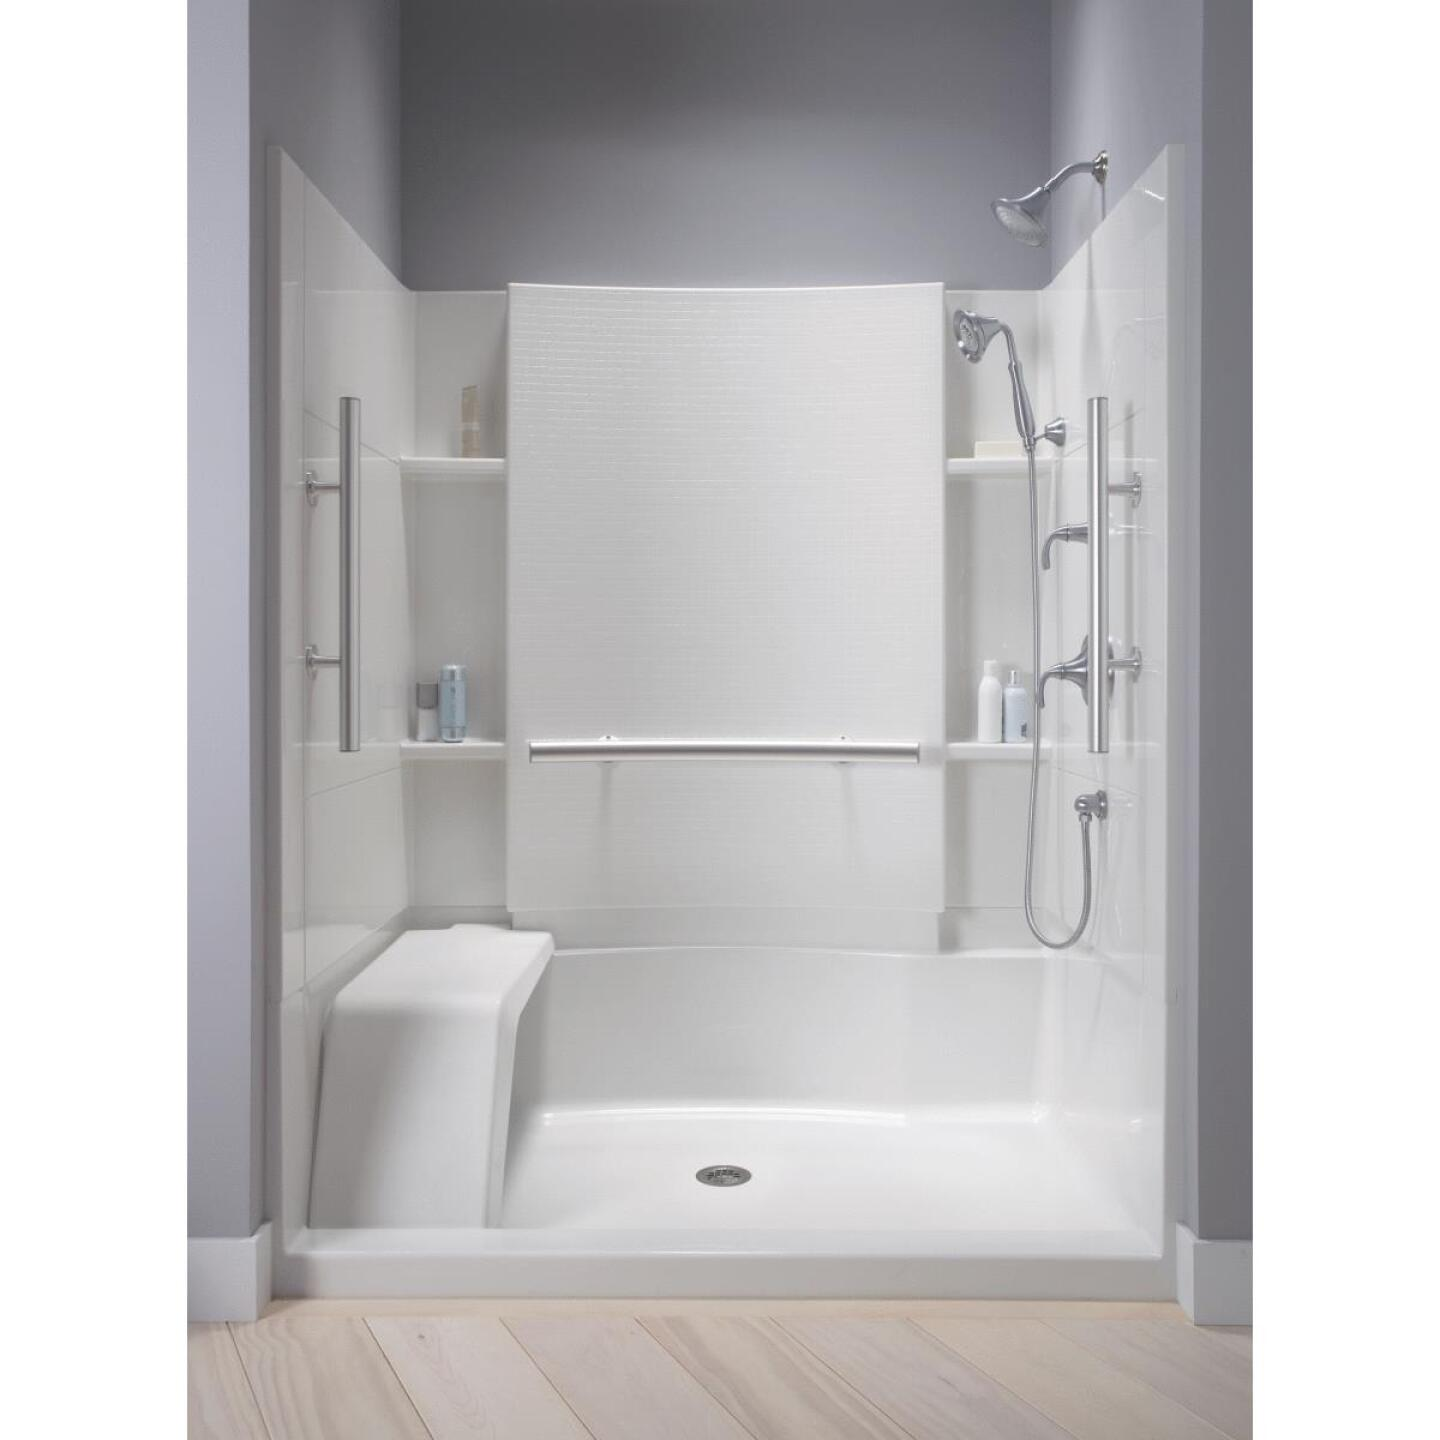 Sterling Accord 48 In. W x 36 In. D Center Drain Seated Shower Floor & Base in White Image 5